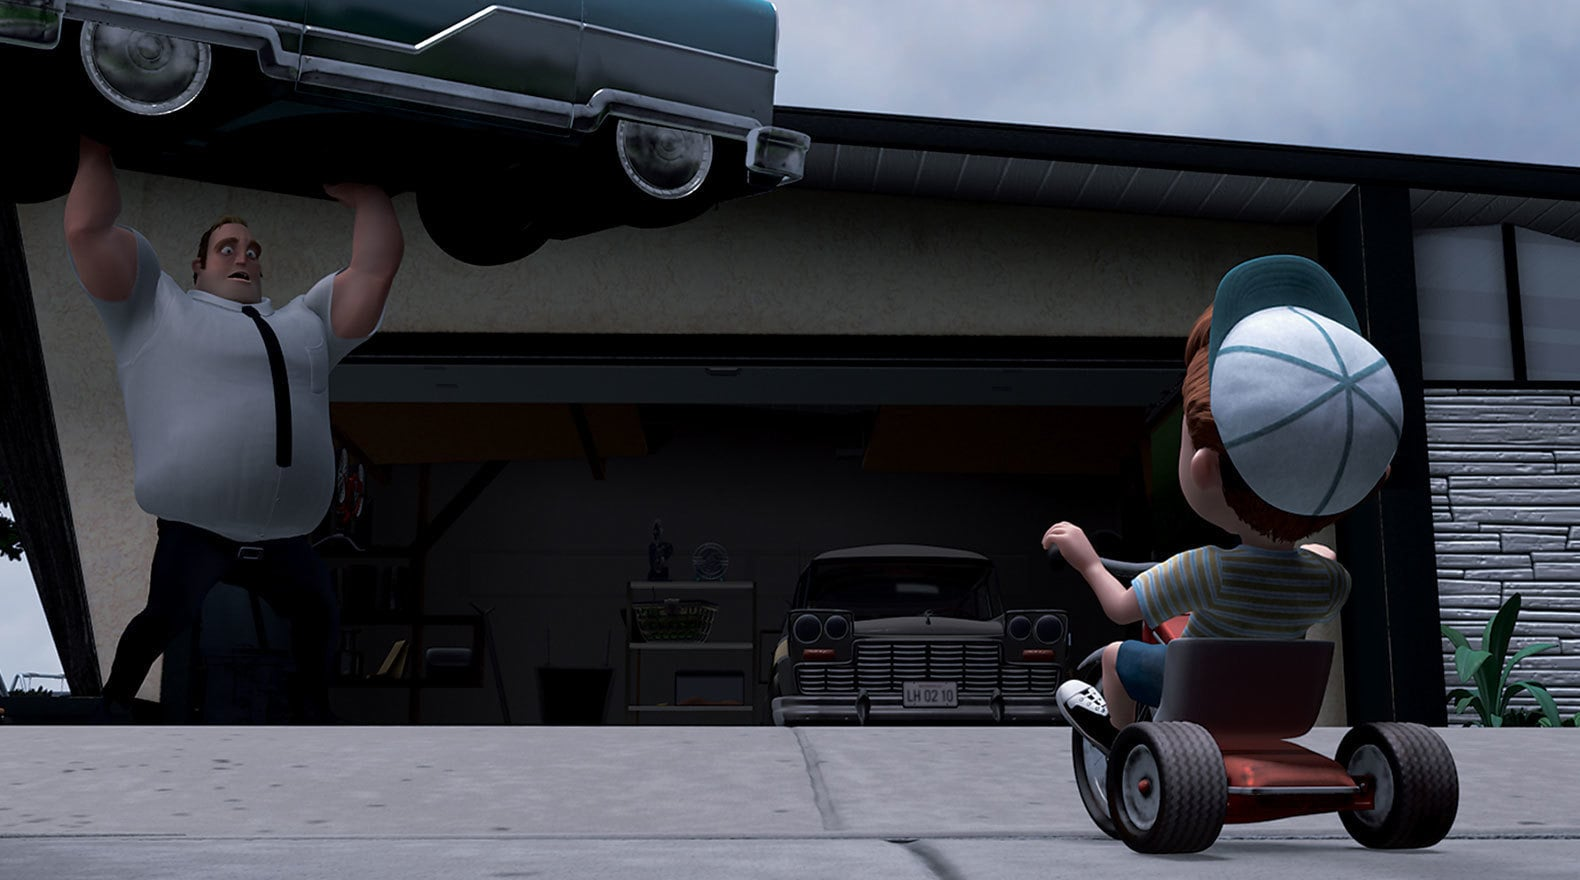 """Mr. Incredible lifts a car in """"The Incredibles"""""""